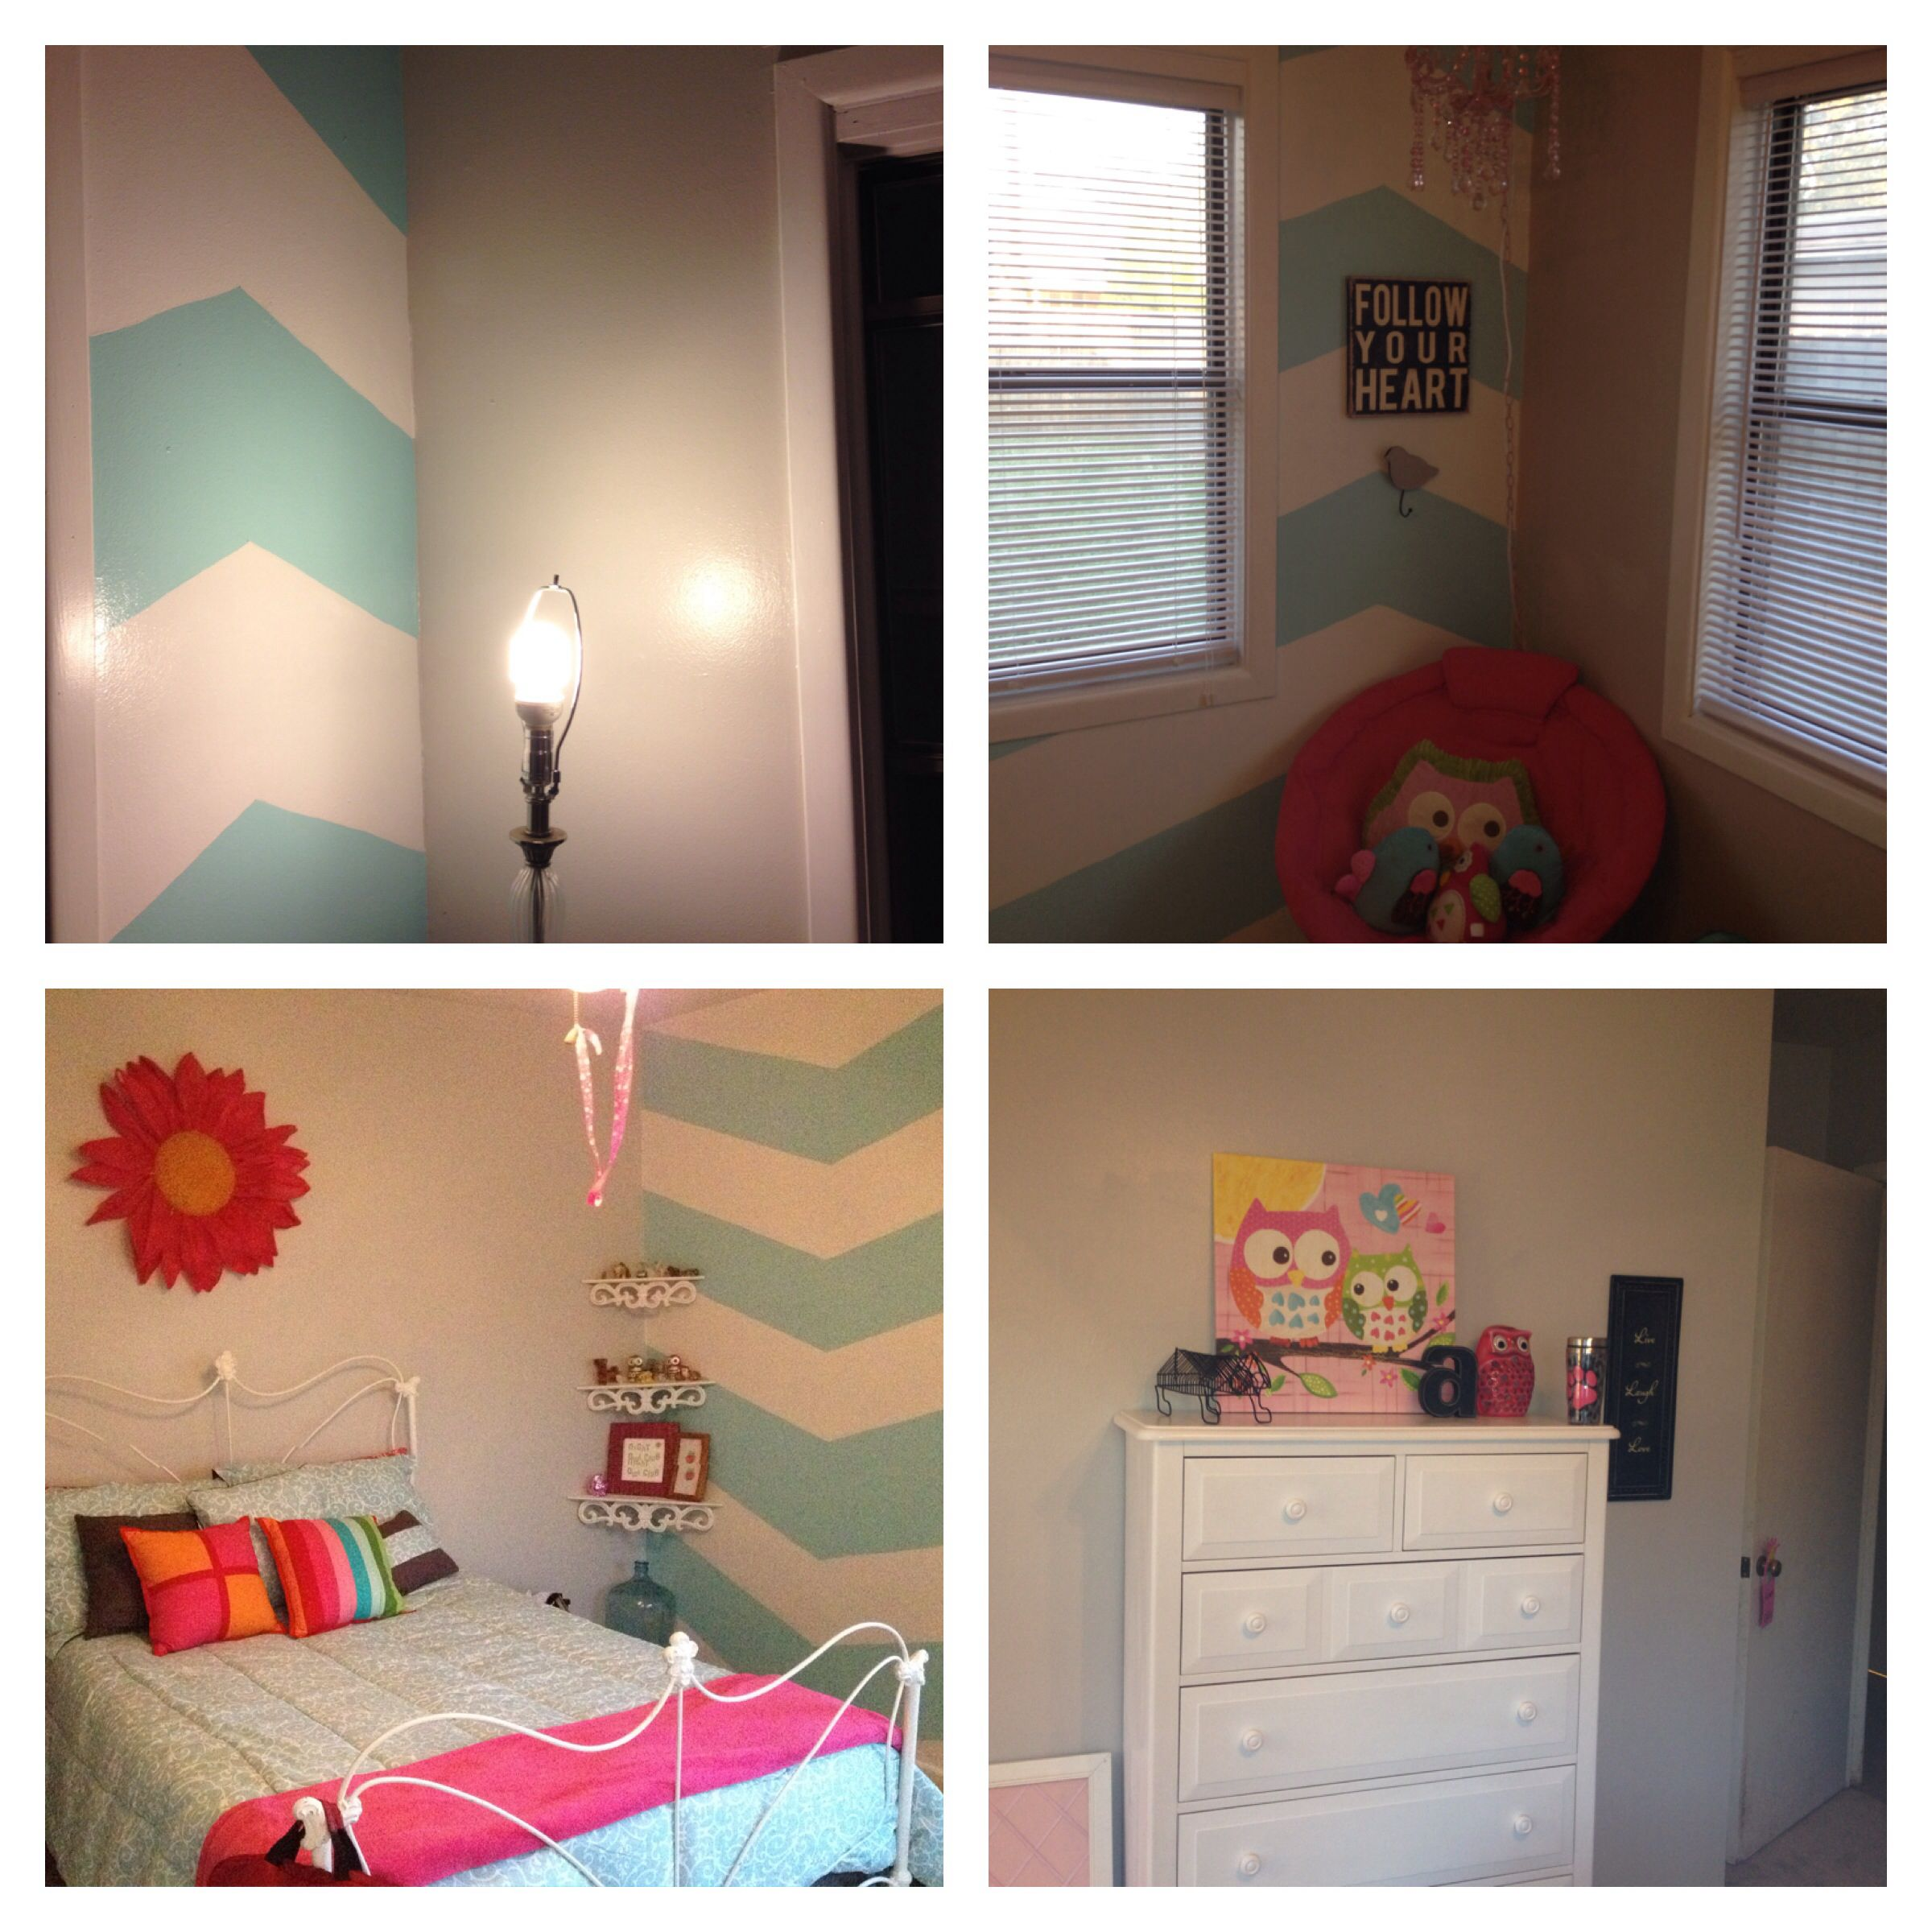 Teal & Gray Bedroom With Black ,pink And White Accent